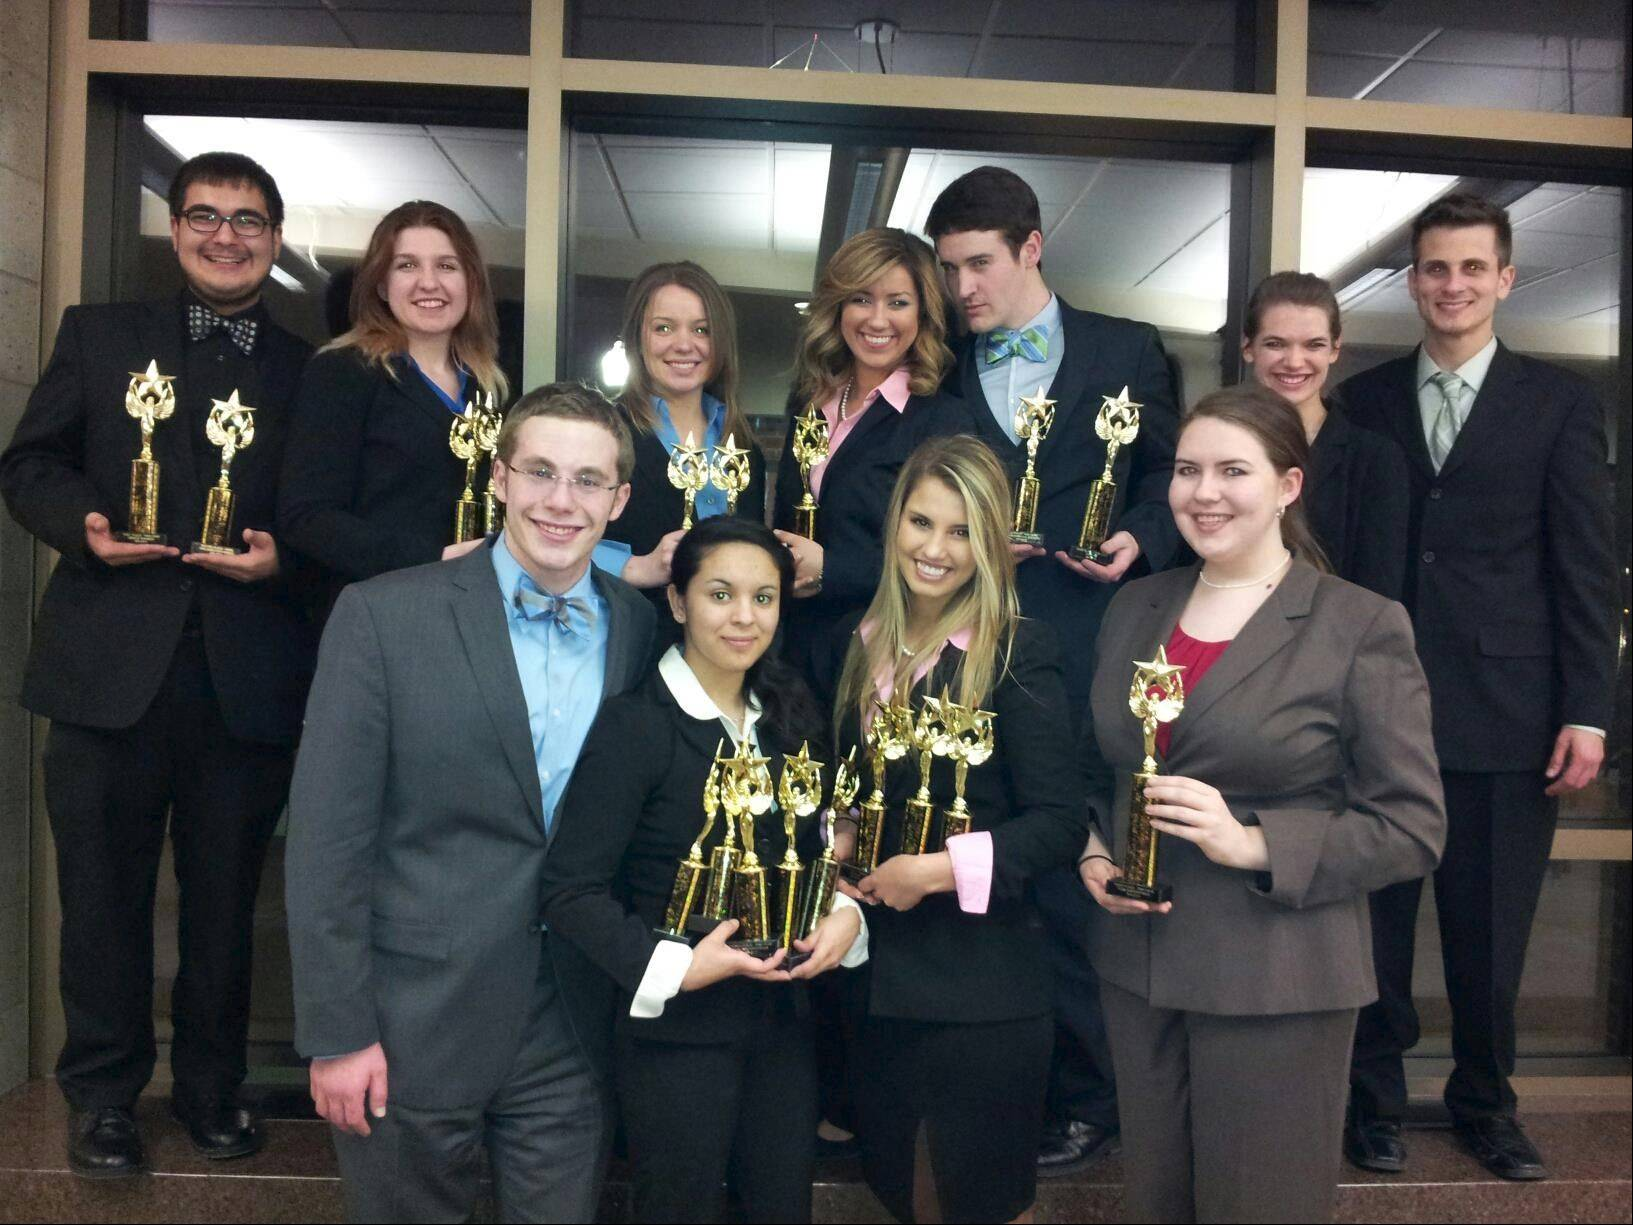 The 2012-13 Harper College Debate Team. Back row, from left: Miguel Melgar; Brianna Bitout; Melissa Bleile; Jackie Van LyseBettens; Patrick Halpin; Kelli Halfman and Anthony Suchala; front row, from left: Andy Robinson; Elisa Galvan; Kate Fundarek and Bridie Damisch.